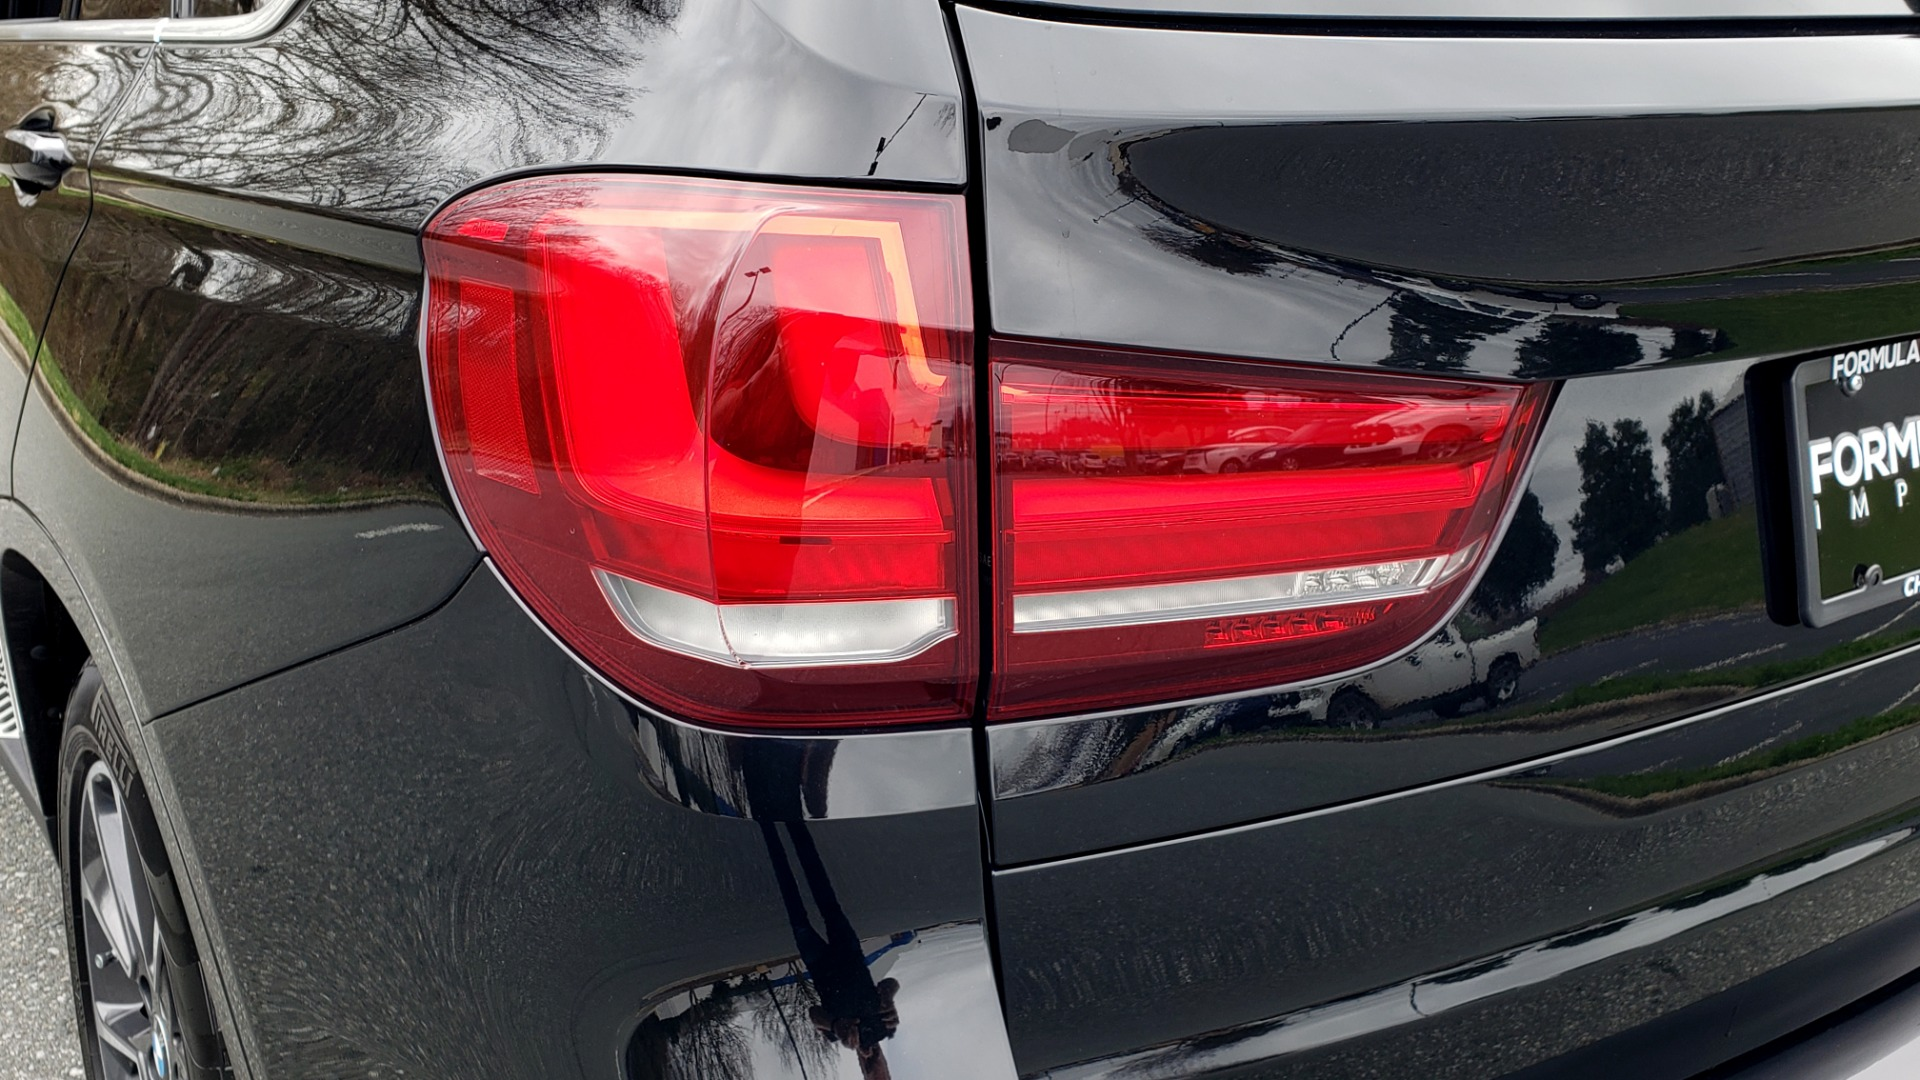 Used 2017 BMW X5 XDRIVE35I / PREM LUX PKG / DRVR ASST / CLD WTHR / APPLE CAR PLAY for sale Sold at Formula Imports in Charlotte NC 28227 30